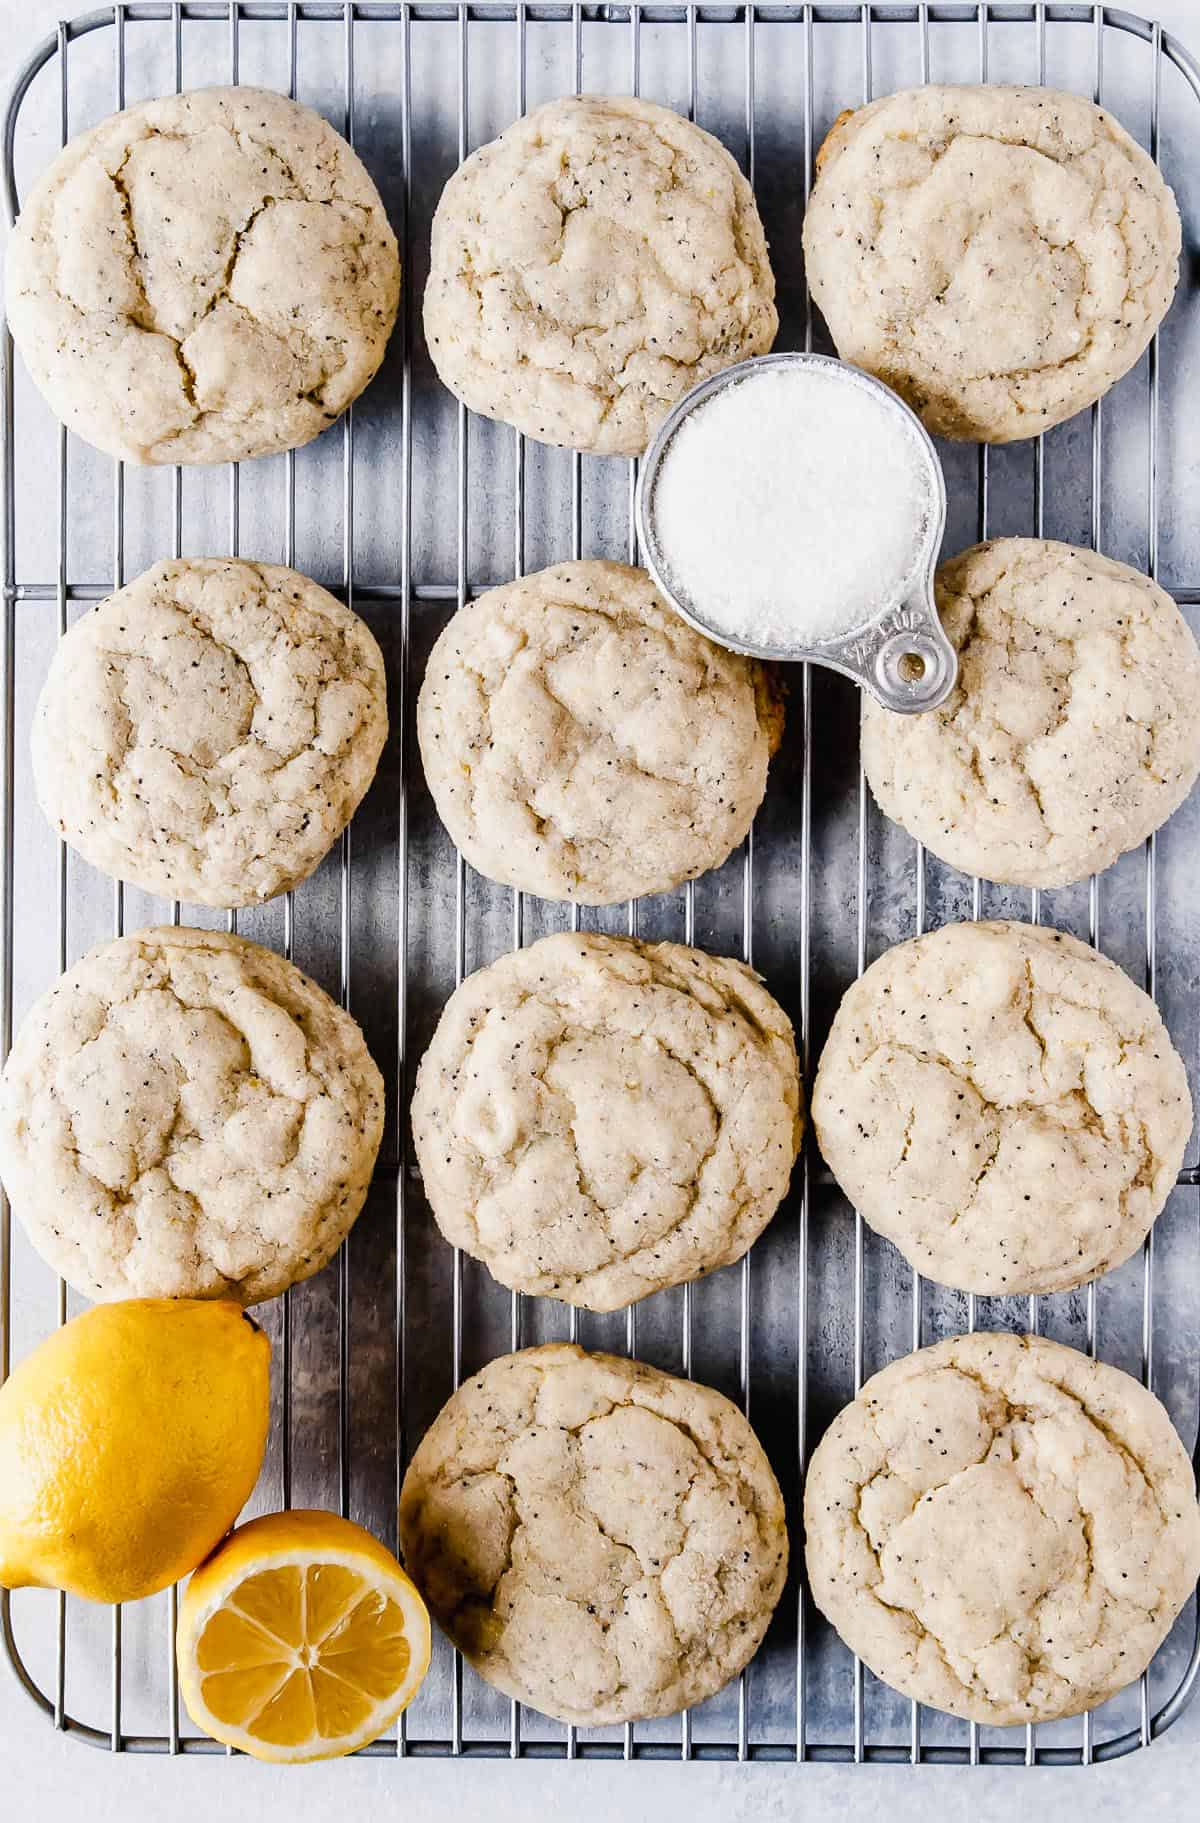 Citrus poppy seed vegan sugar cookies on cooling rack